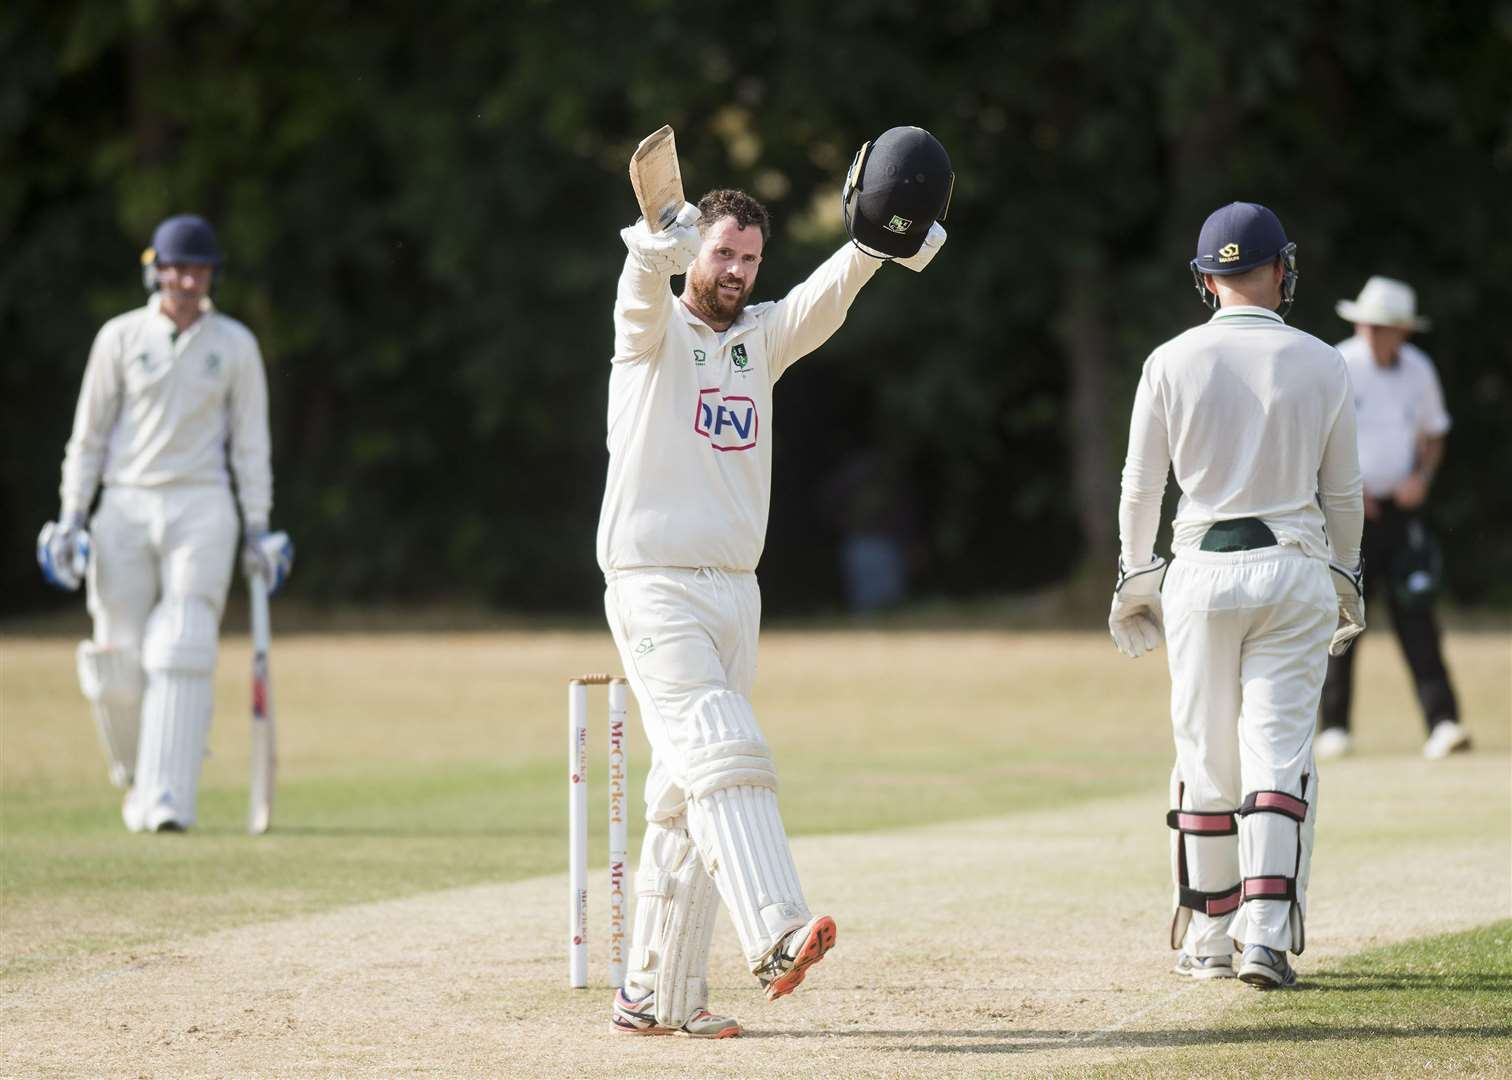 CRICKET: Burwell & Exning v Horsford Tom Griffiths Batted well scoring 121 Picture Mark Westley. (2930807)